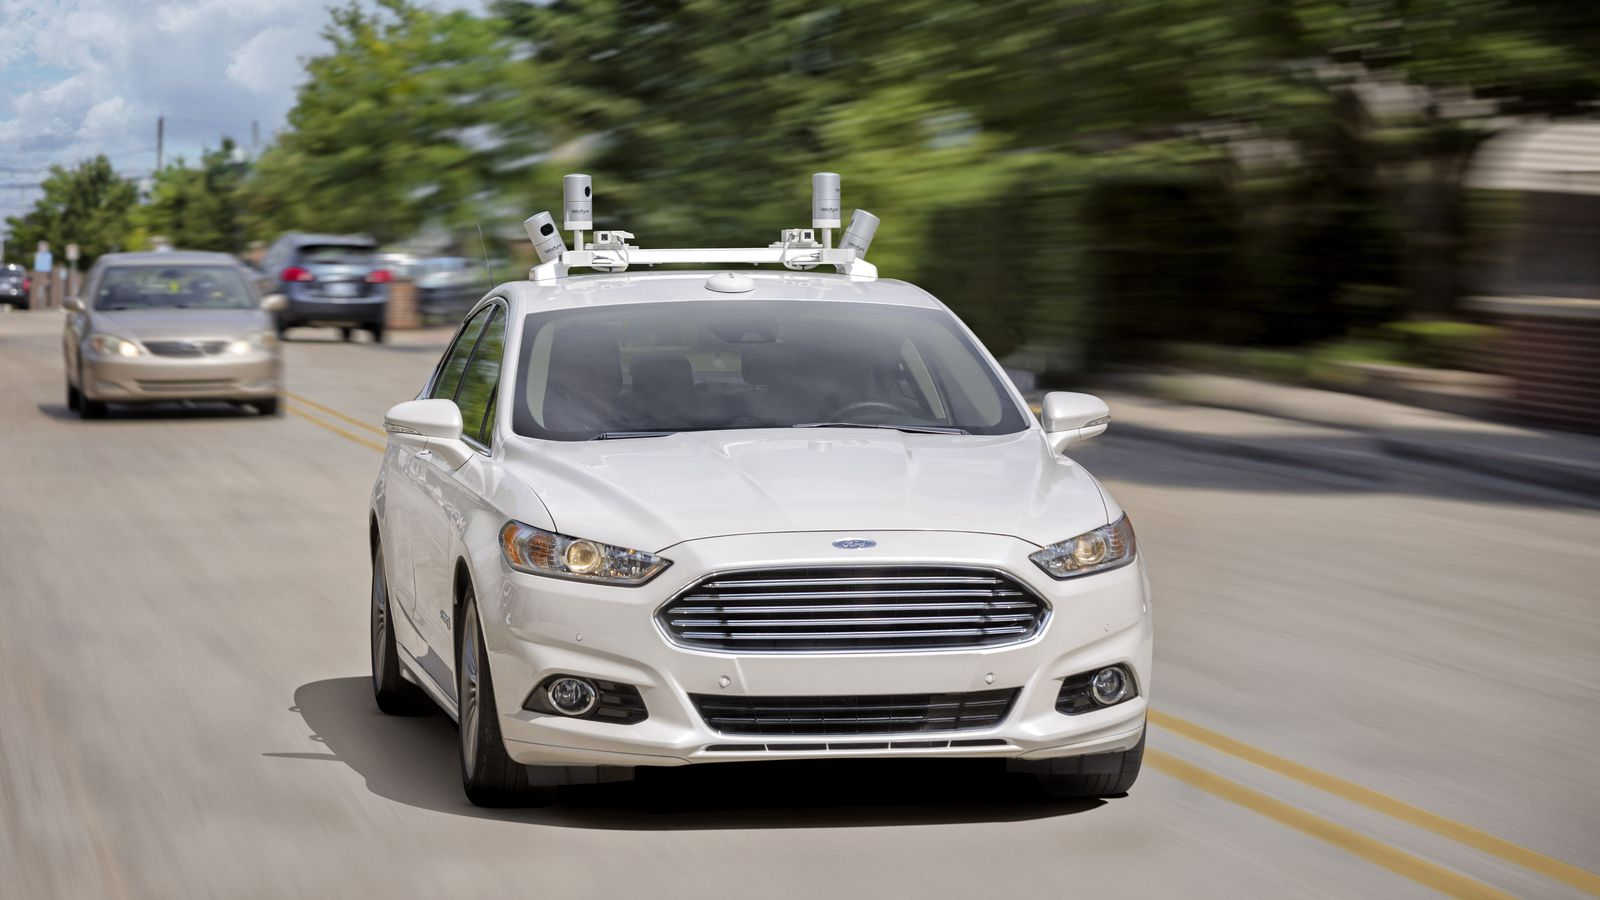 Detroit is kicking Silicon Valley's ass in the race to build self-driving cars